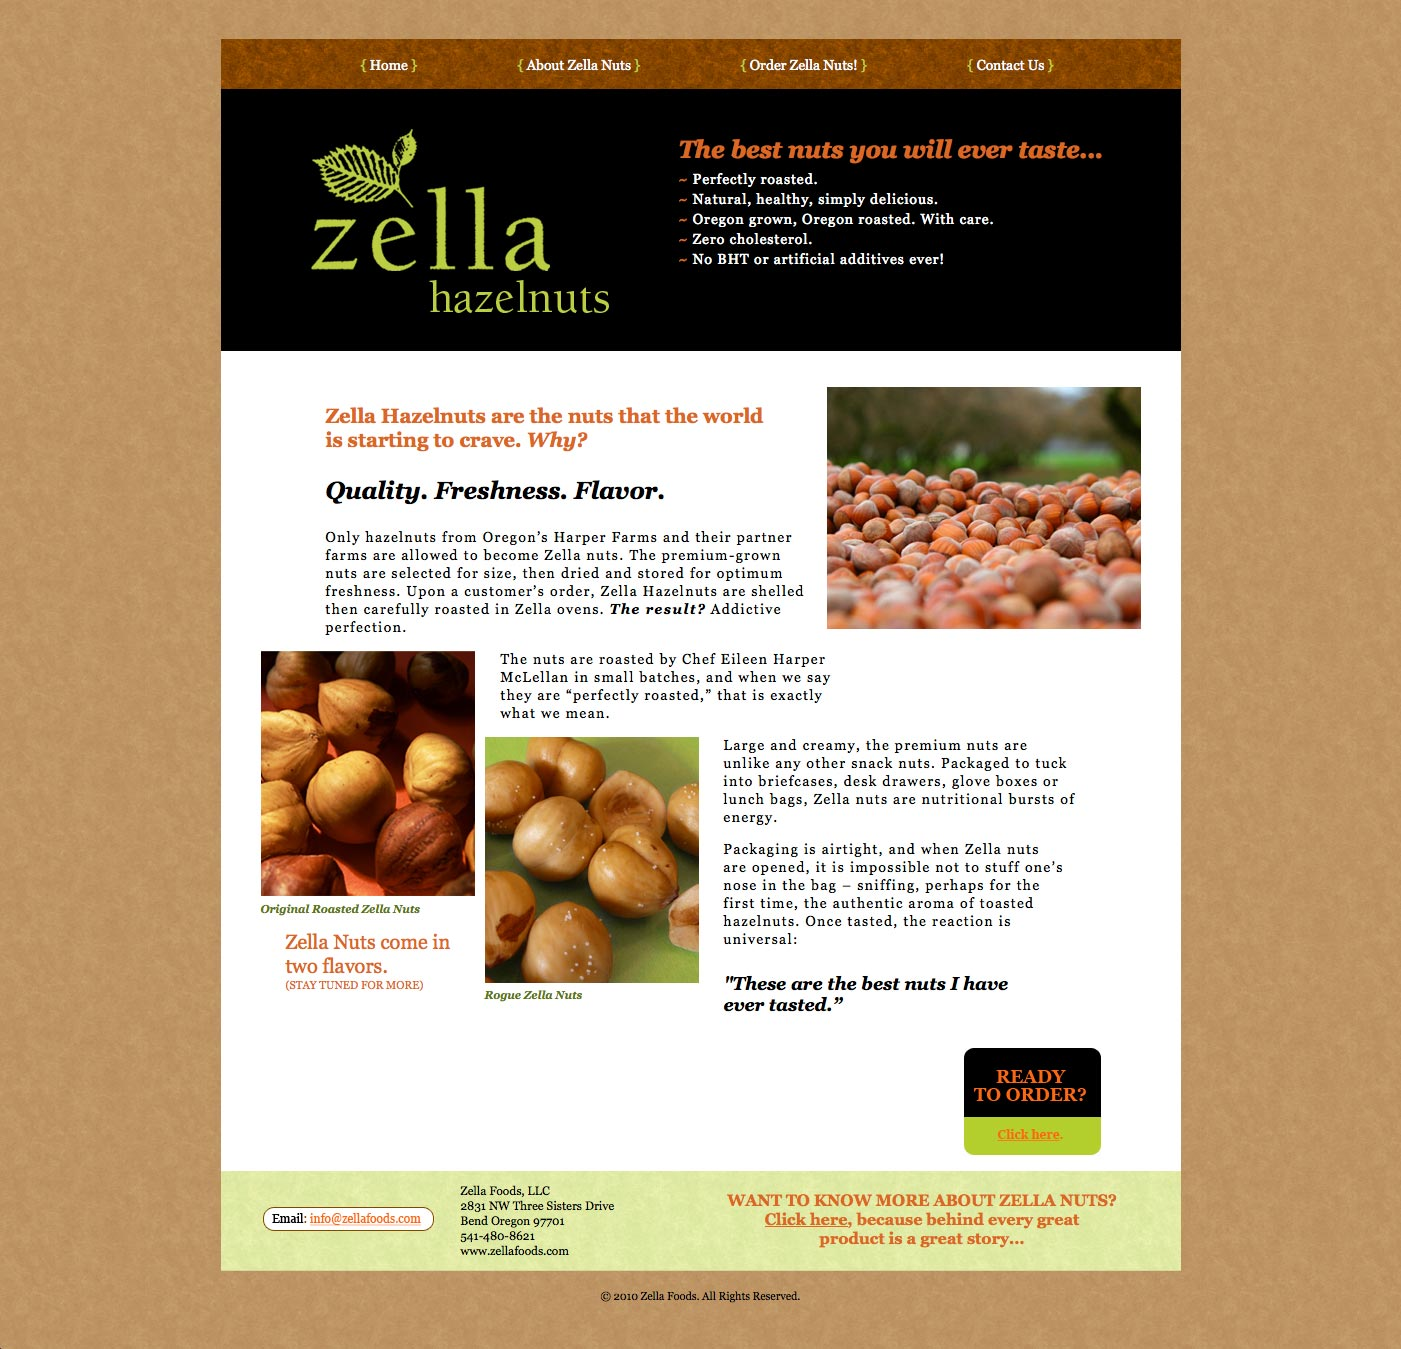 Zella Website Home Page